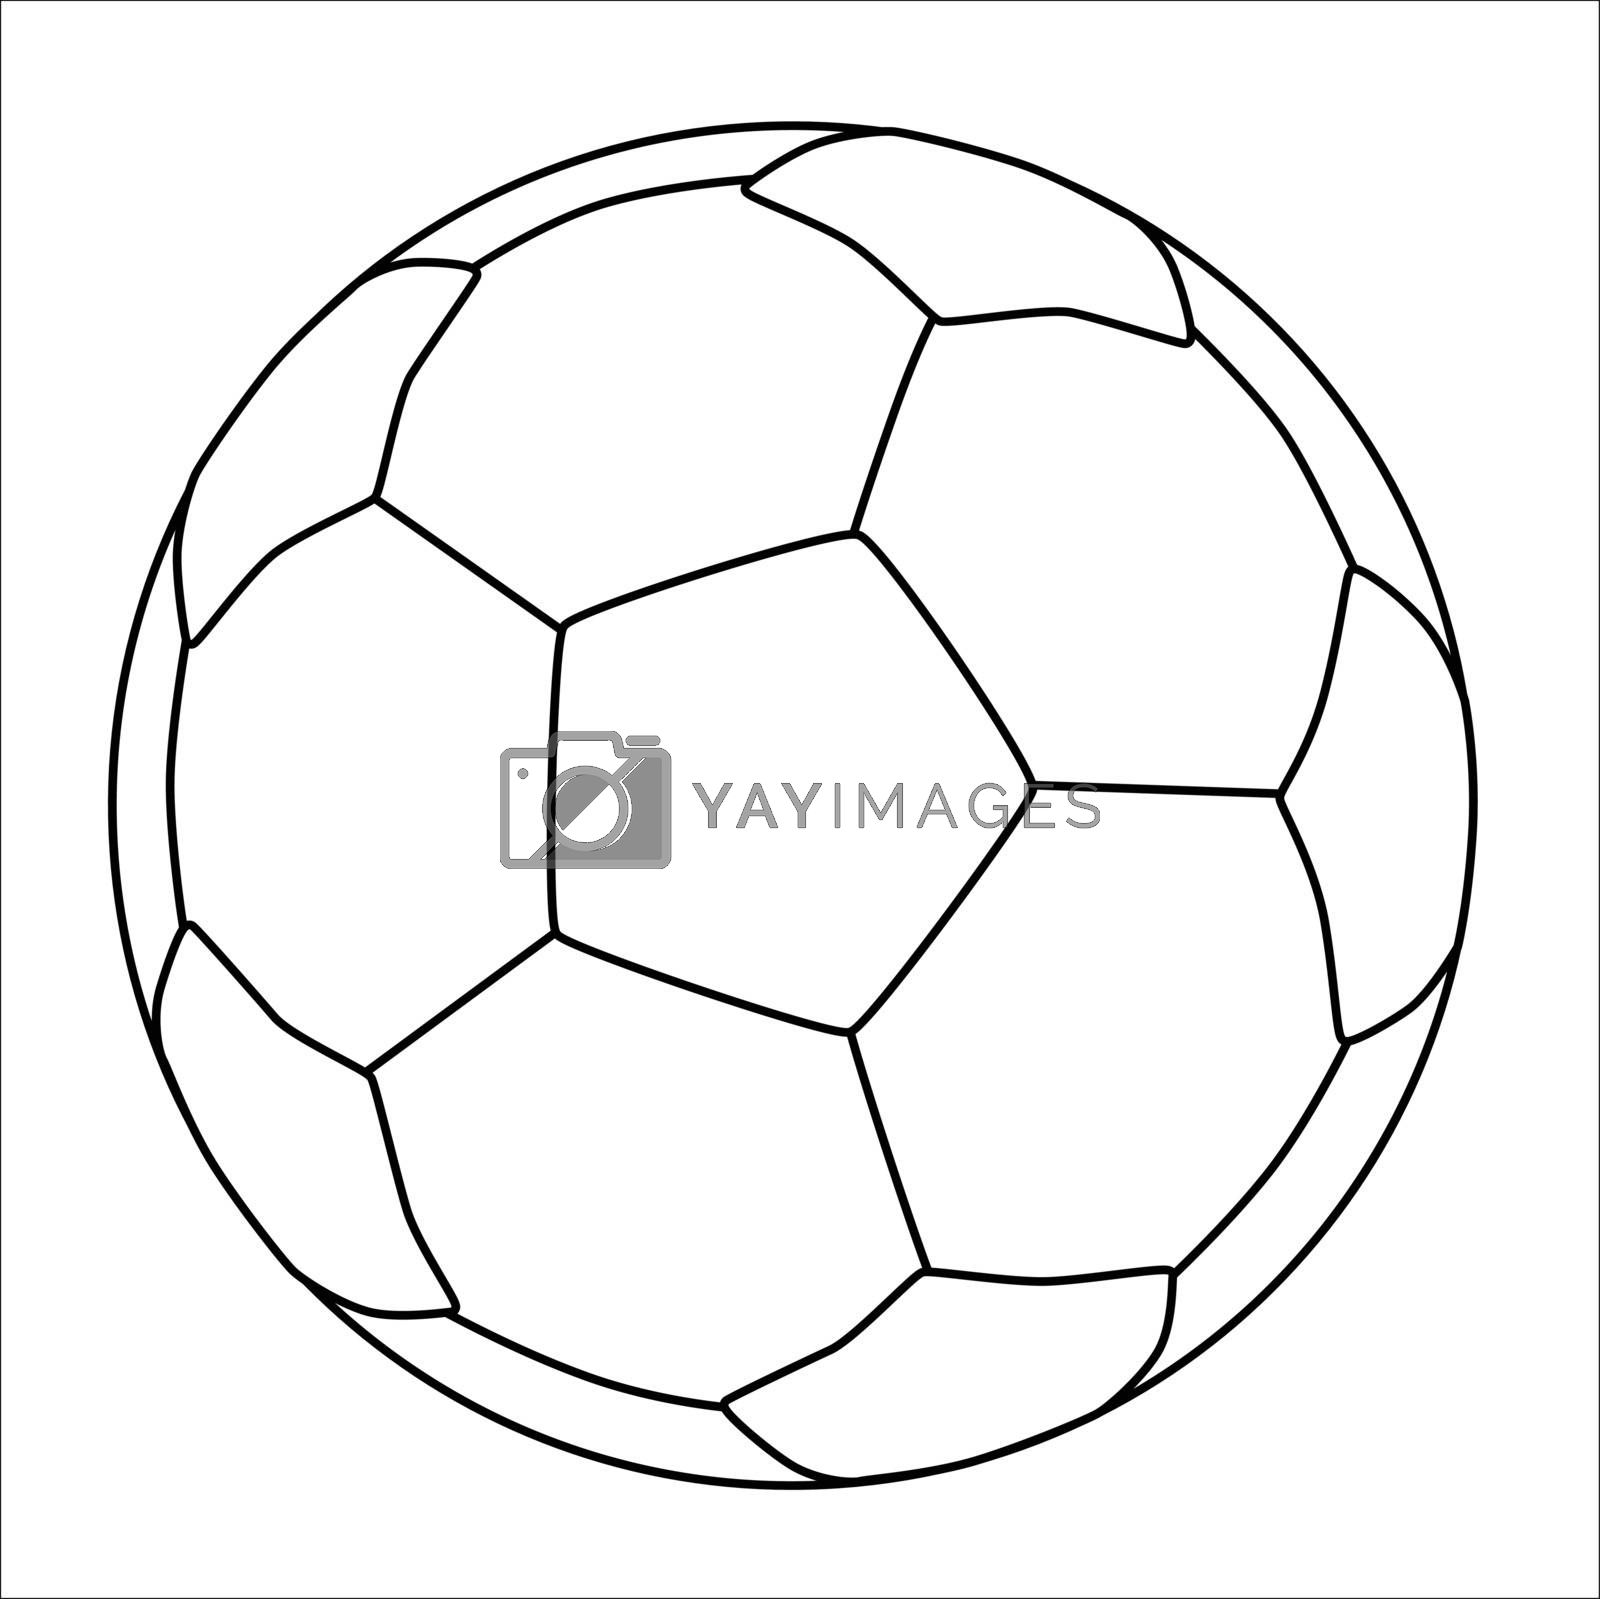 A typical soccer football isolated over a white background